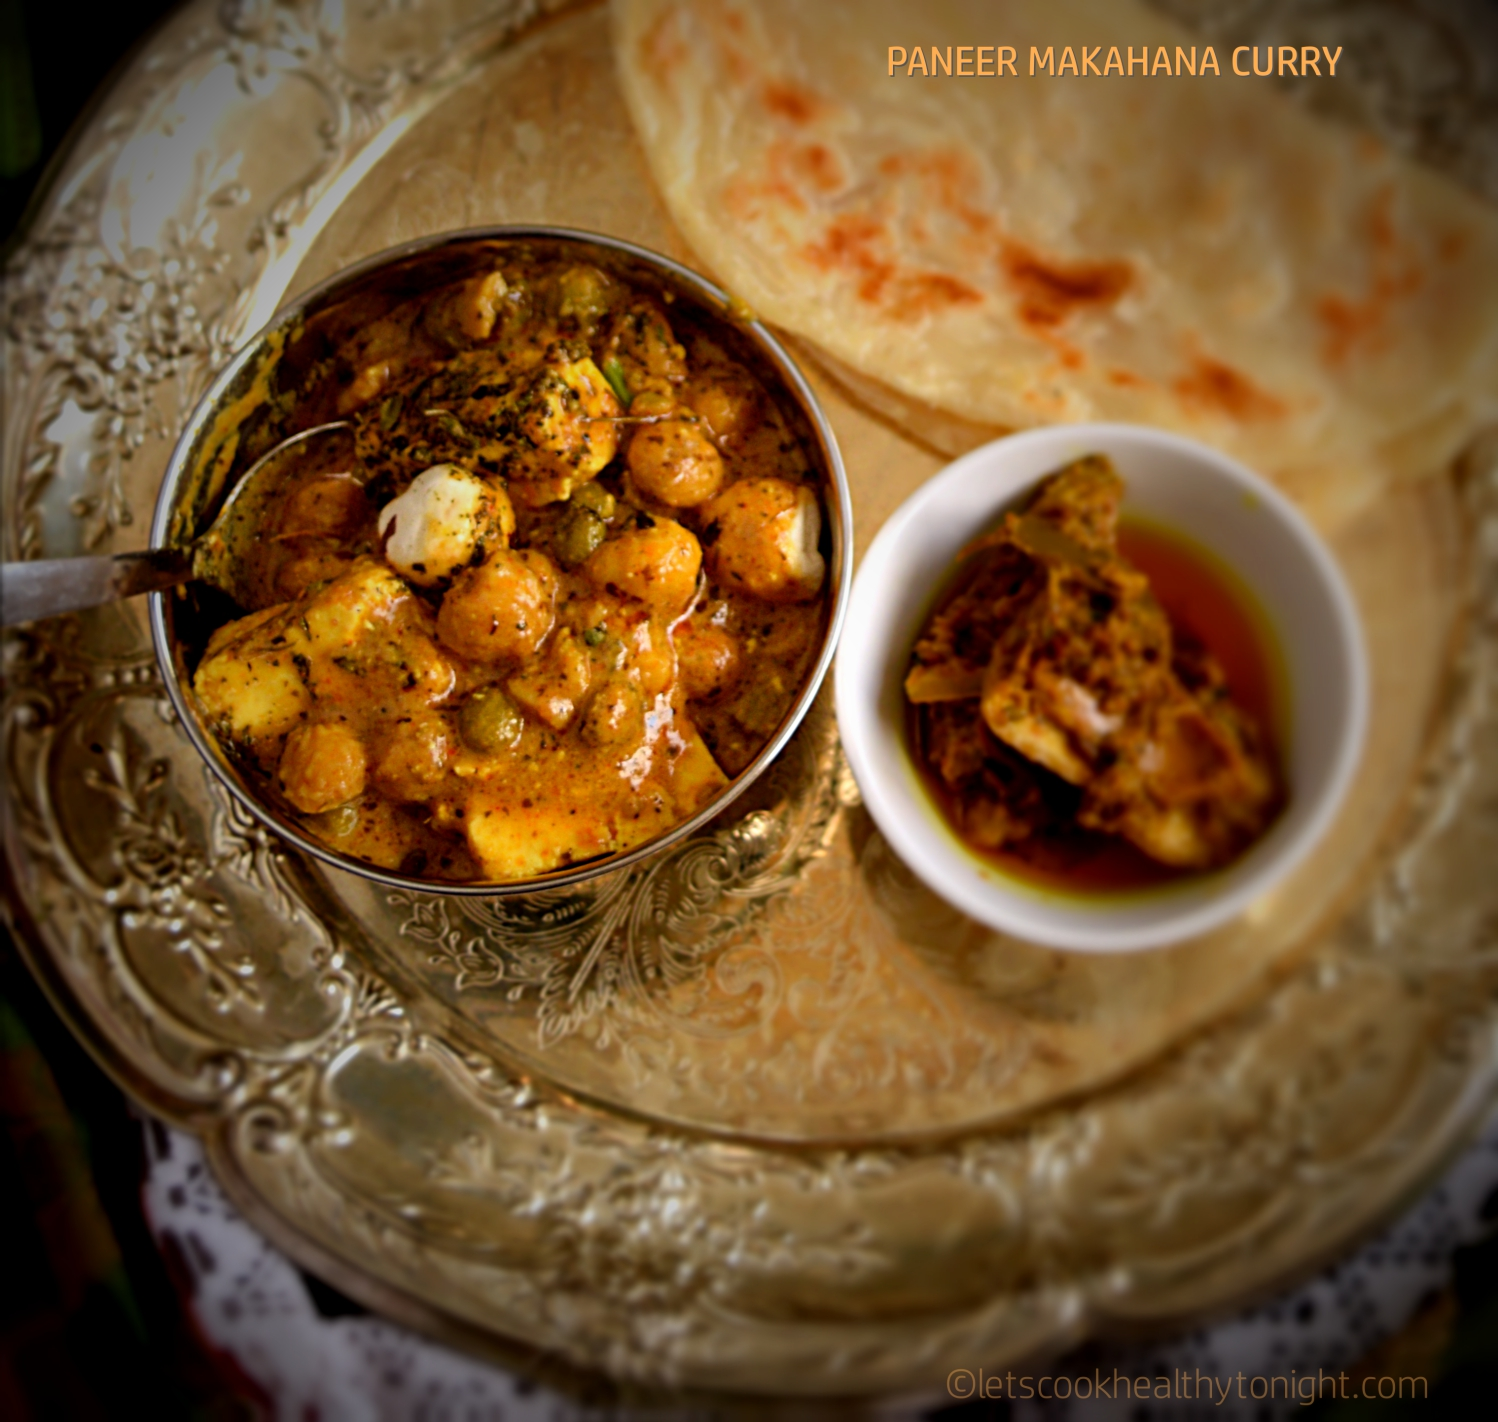 Paneer Makhana Curry